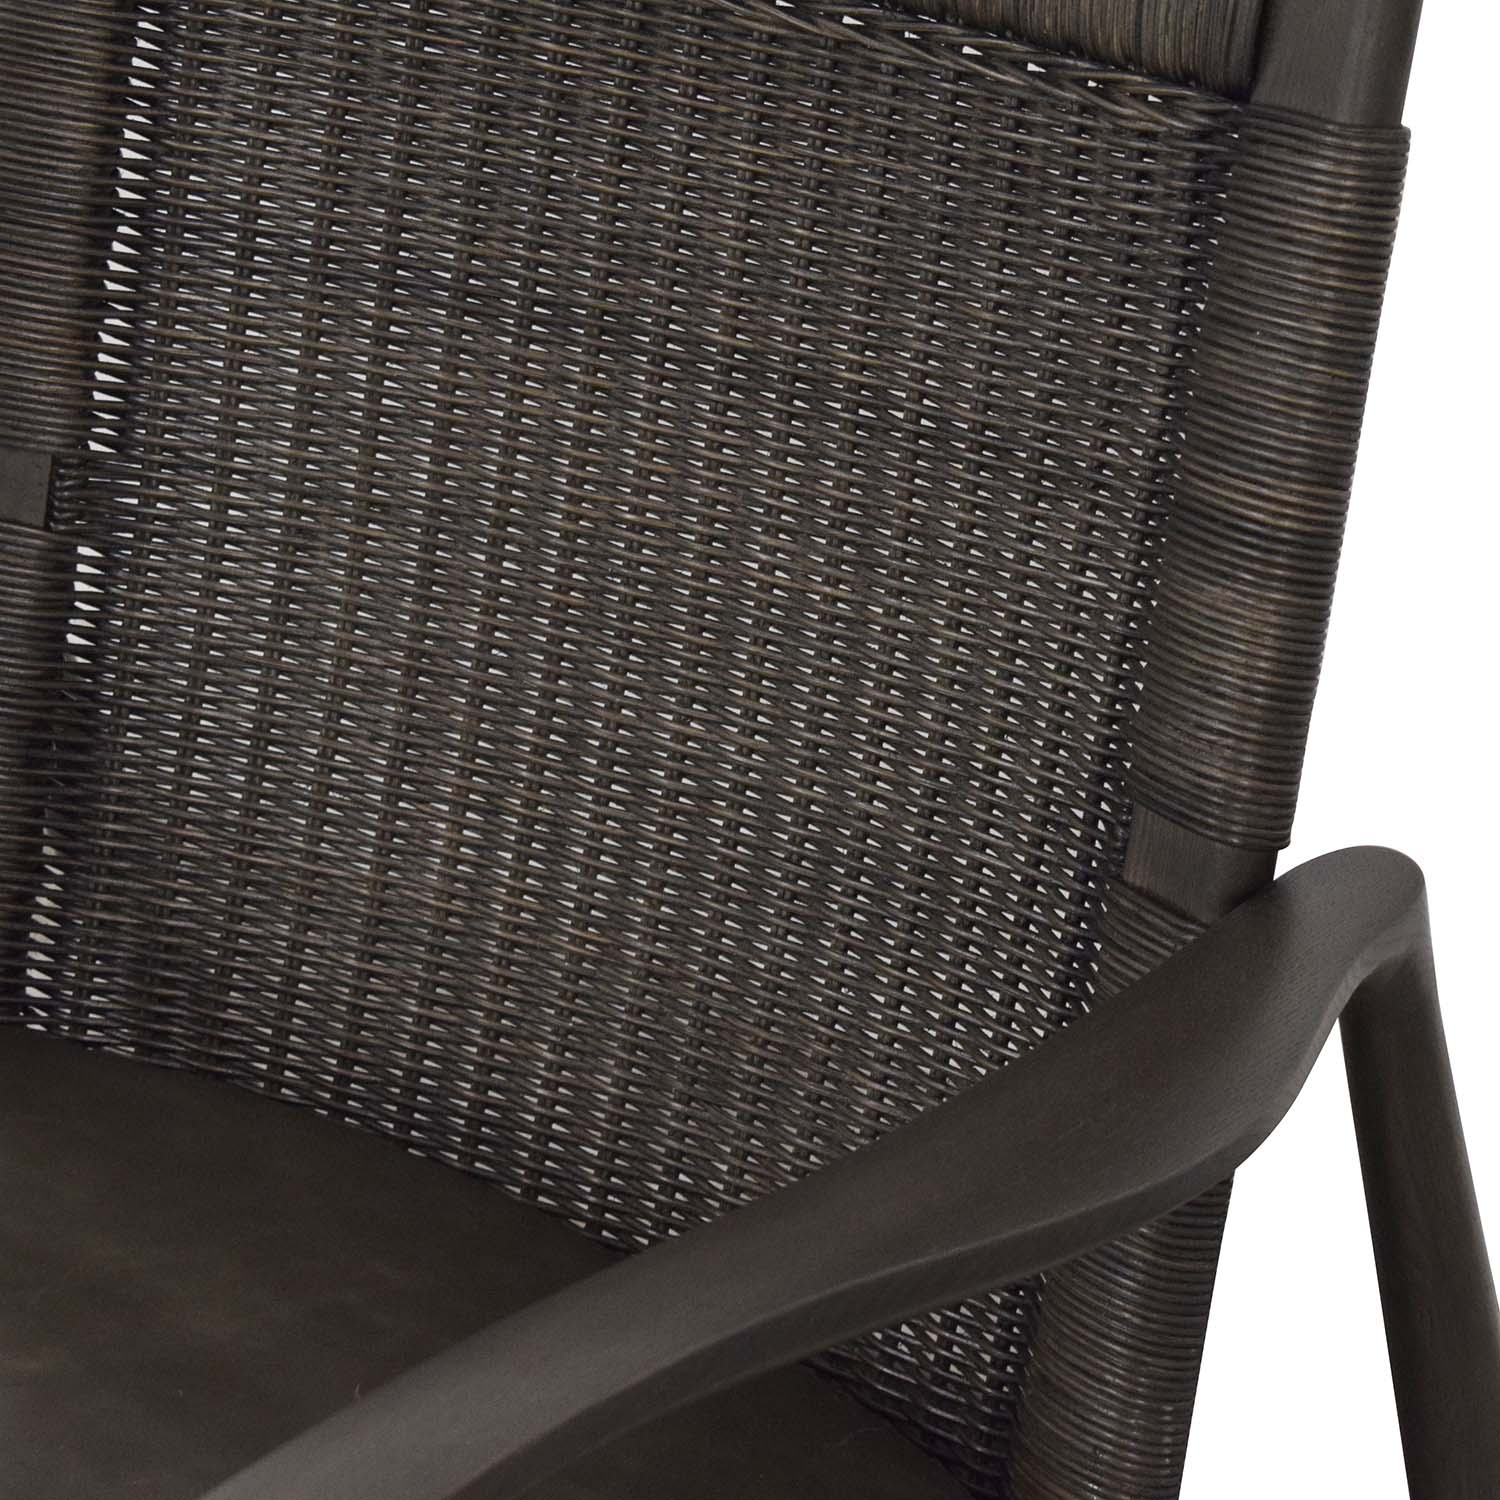 buy Crate & Barrel Sebago Midcentury Rattan Chair with Leather Cushion Crate & Barrel Chairs